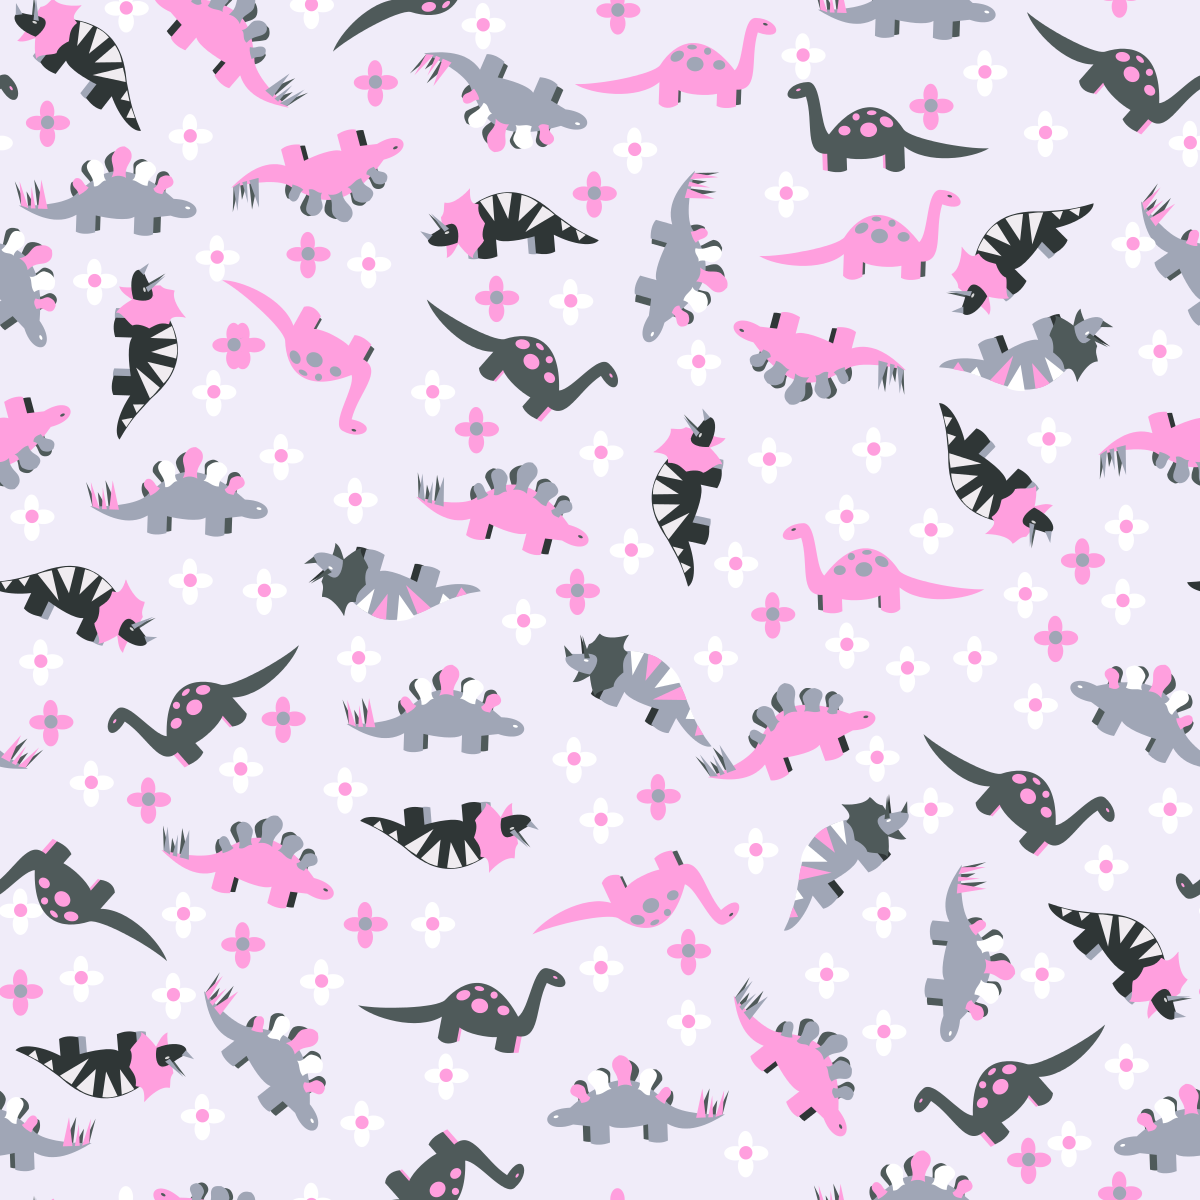 Colorful Fabrics Digitally Printed By Spoonflower Ditsy Pink Dinosaur Floral In 2020 Dinosaur Wallpaper Dinosaur Background Cute Screen Savers